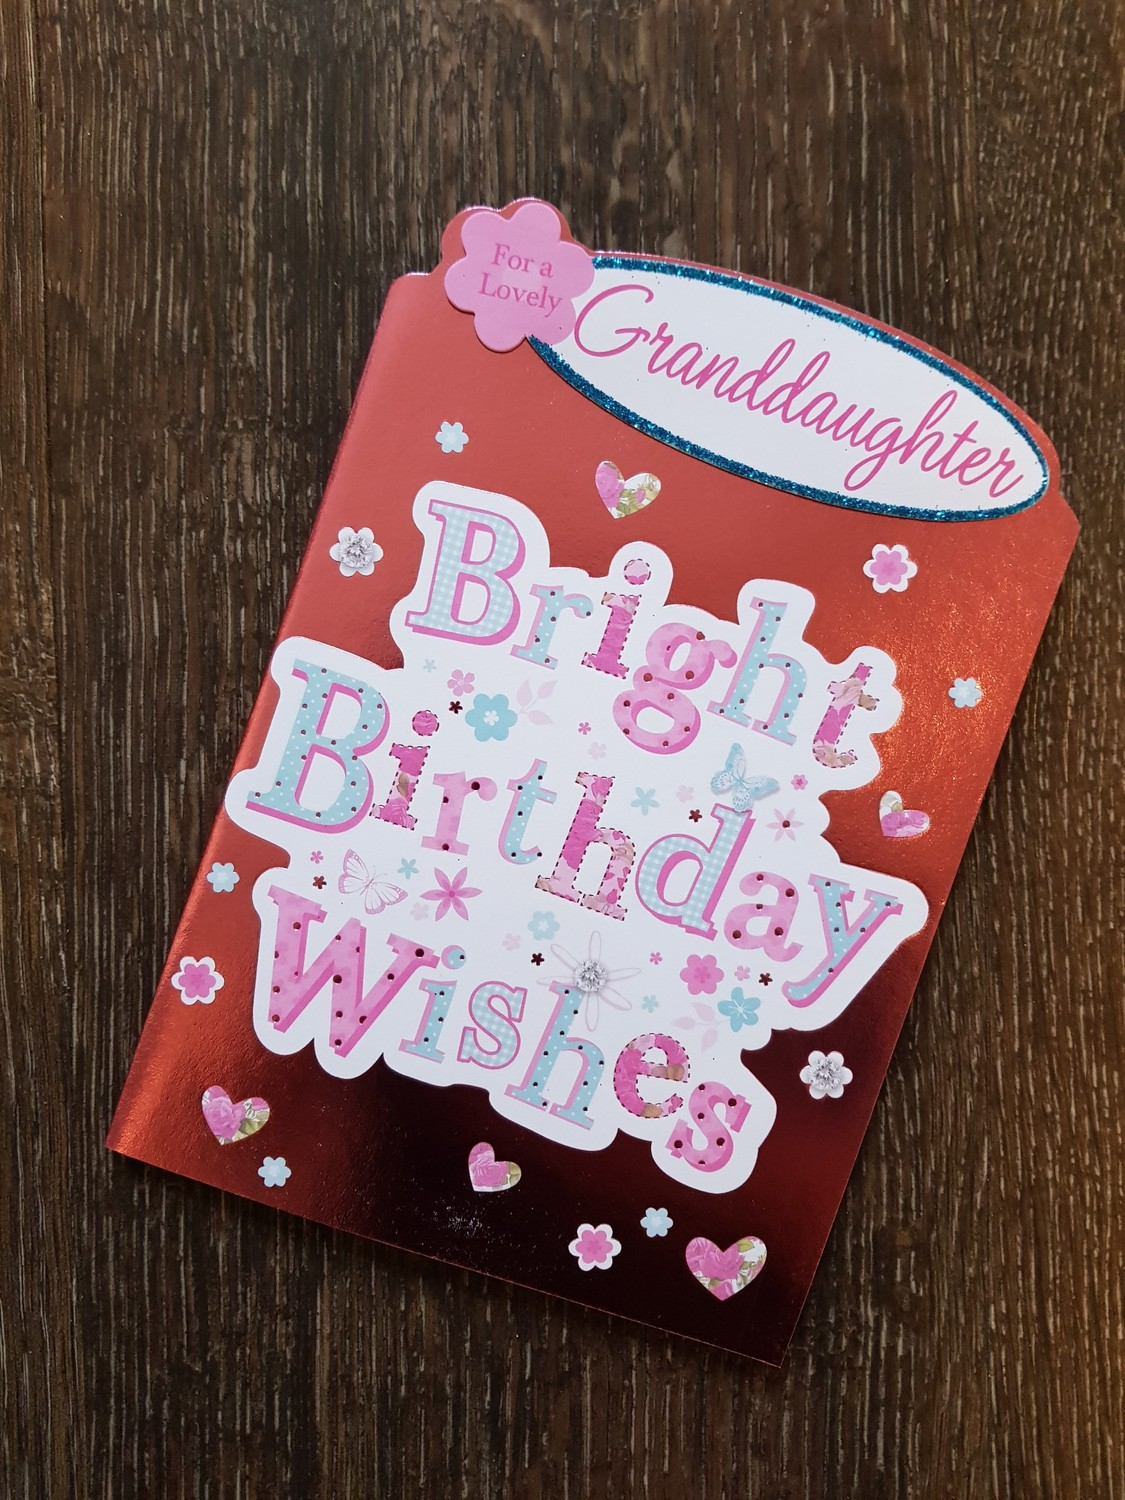 Grand Daughter Bright Birthday Wishes Card